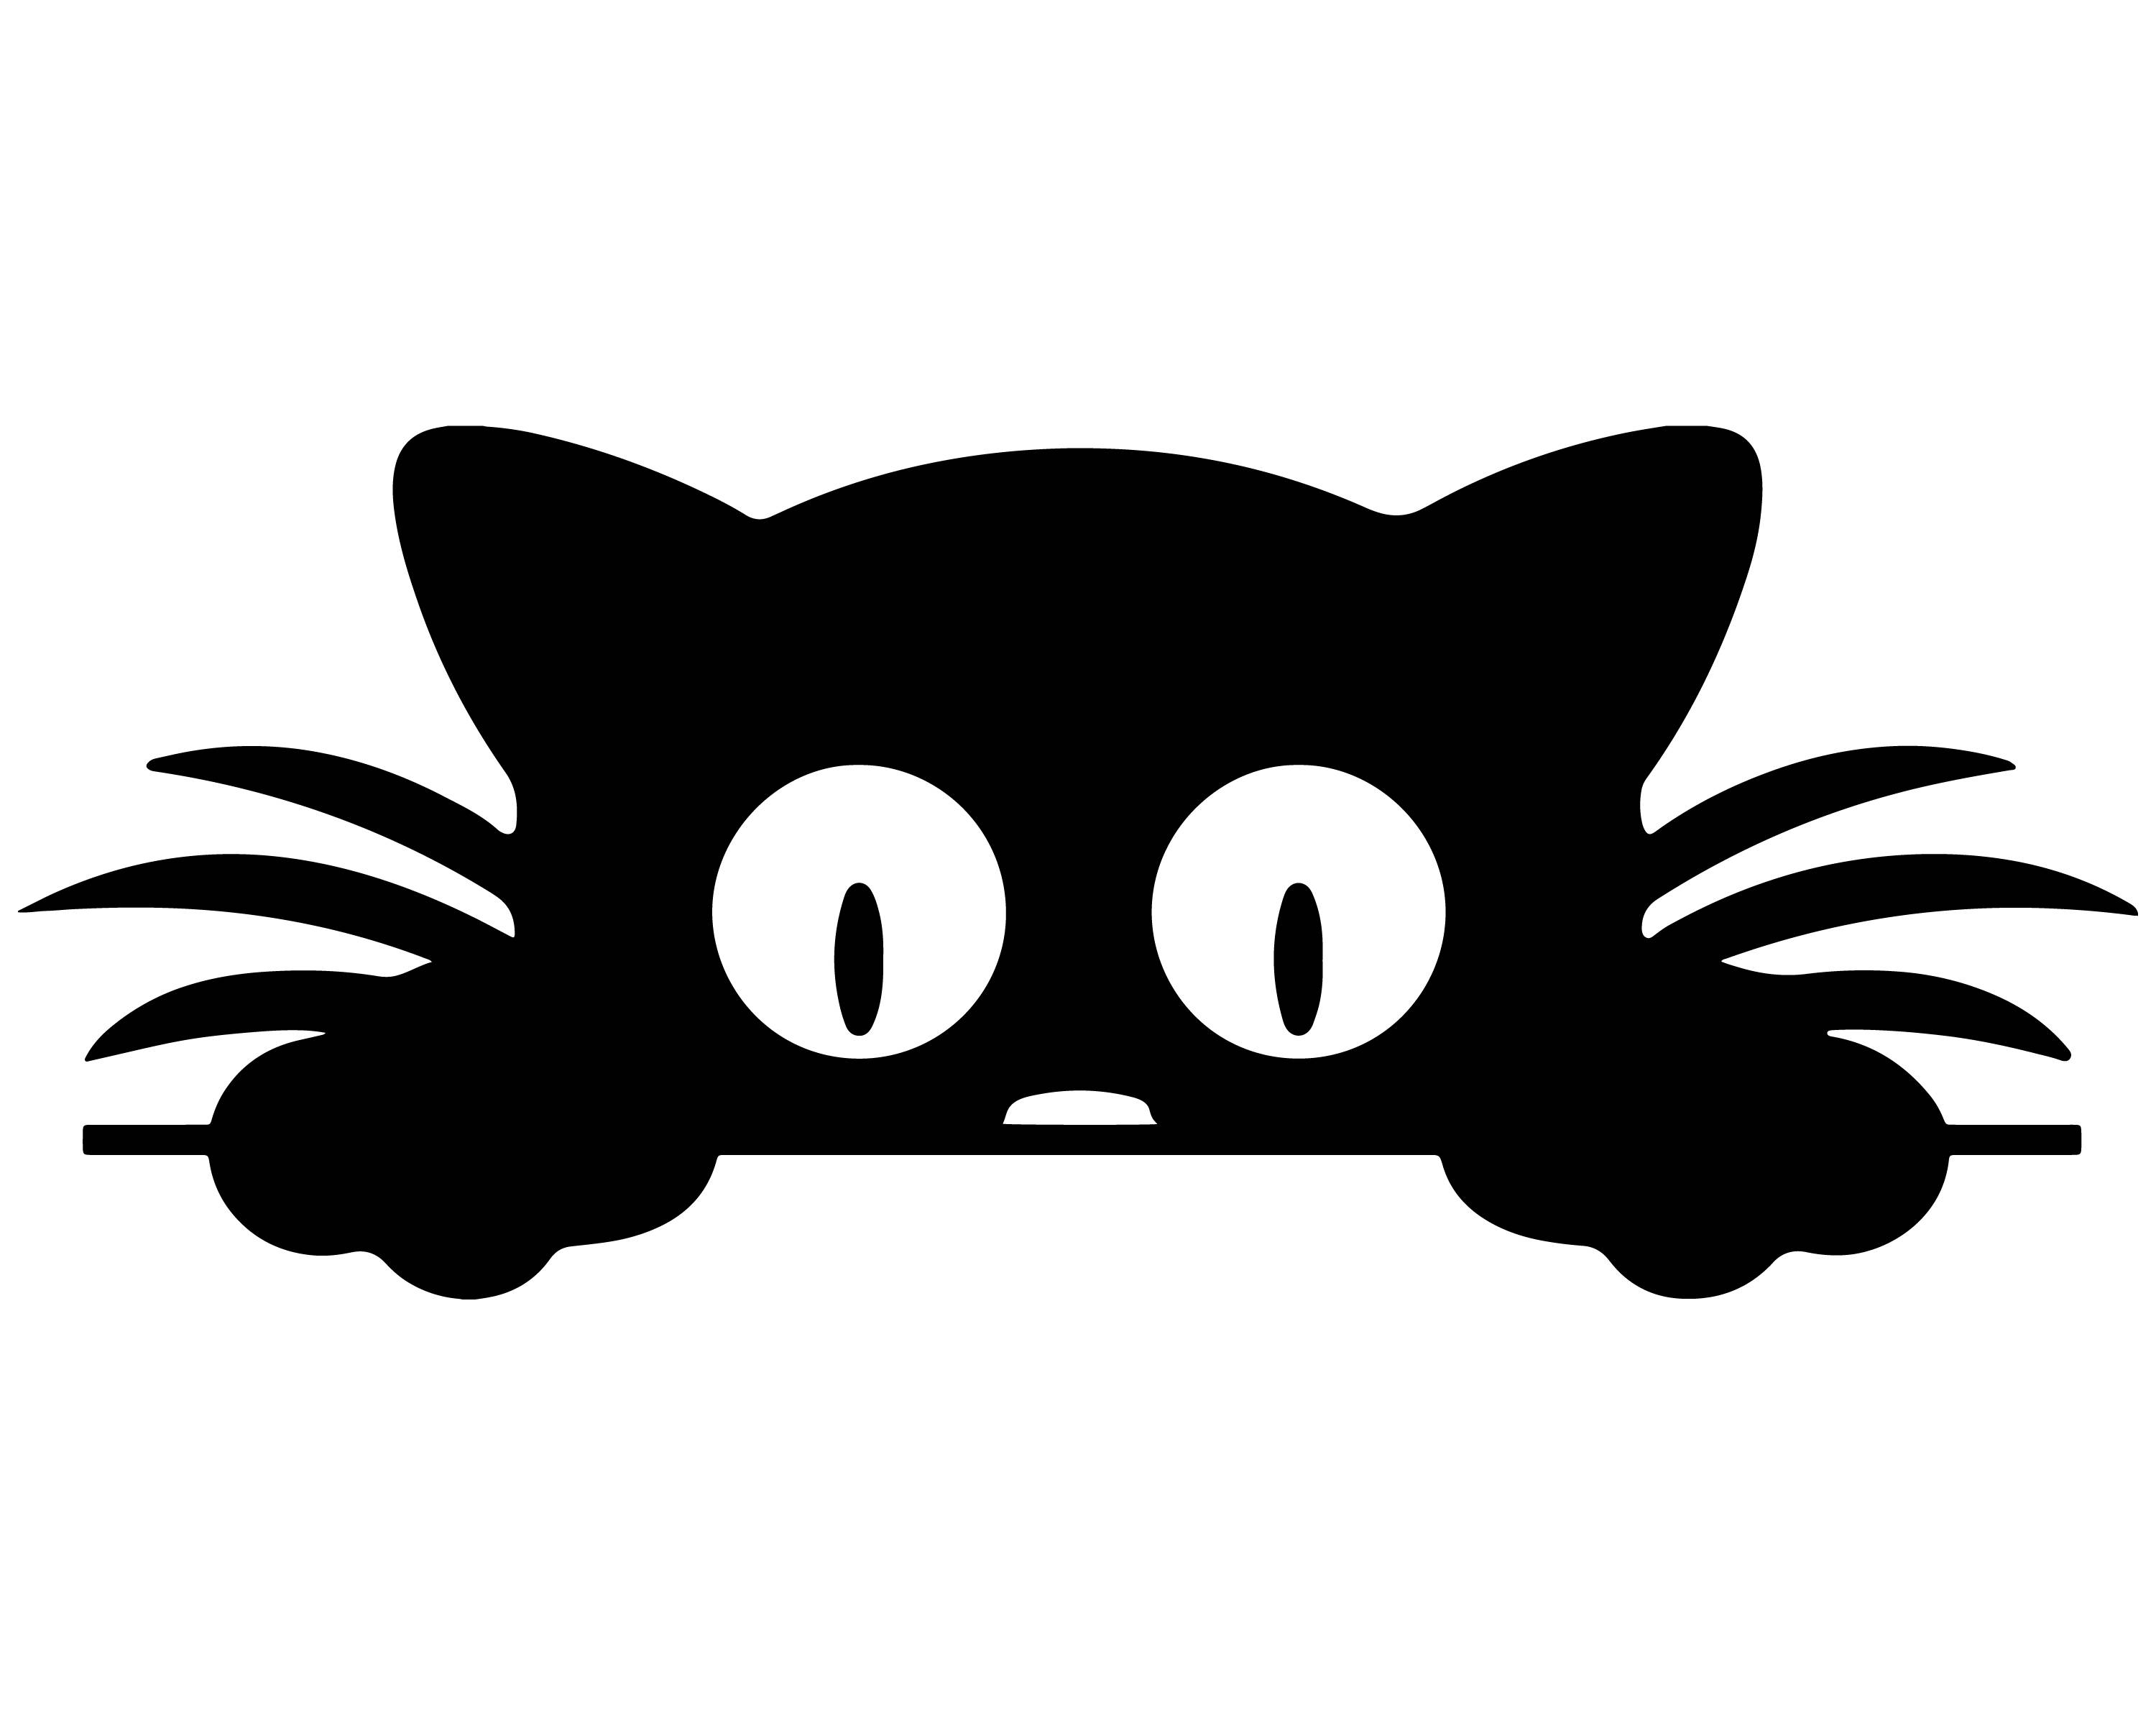 3000x2400 Peeking Cat Silhouette Clipart, Feline, Peeking Cat, Cat Image